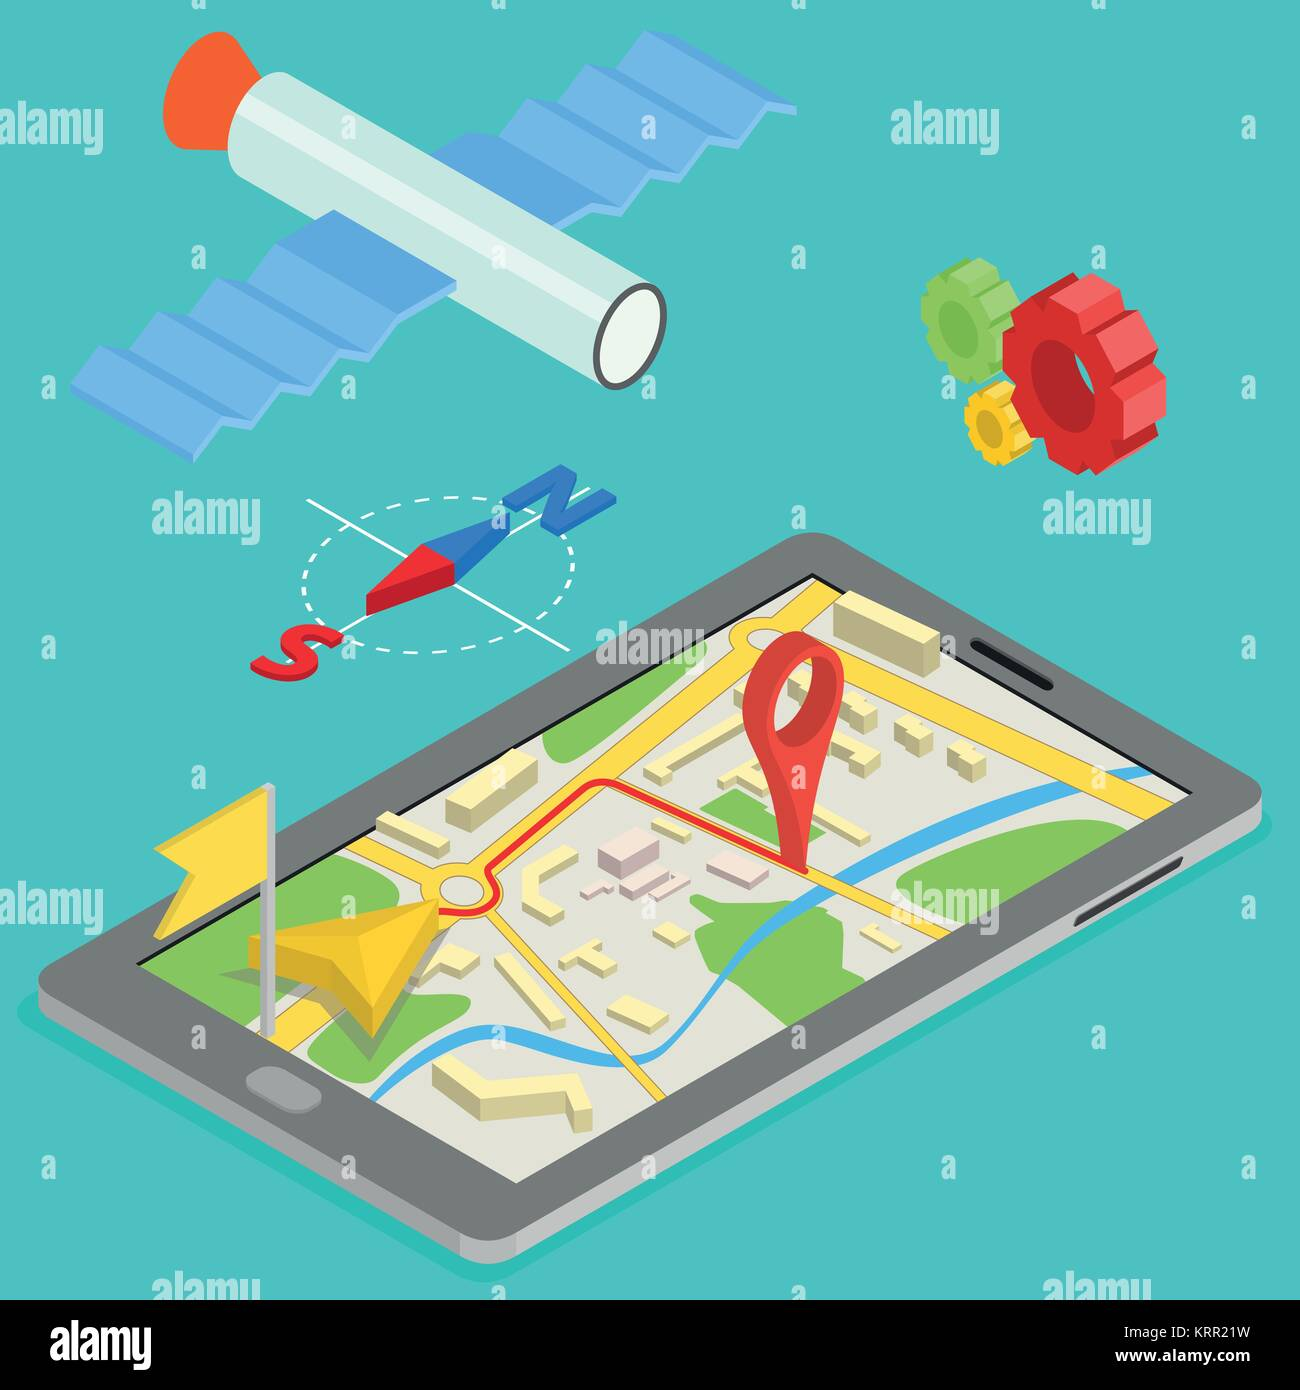 Illustration of GPS in mobile phone showing route map - isometric